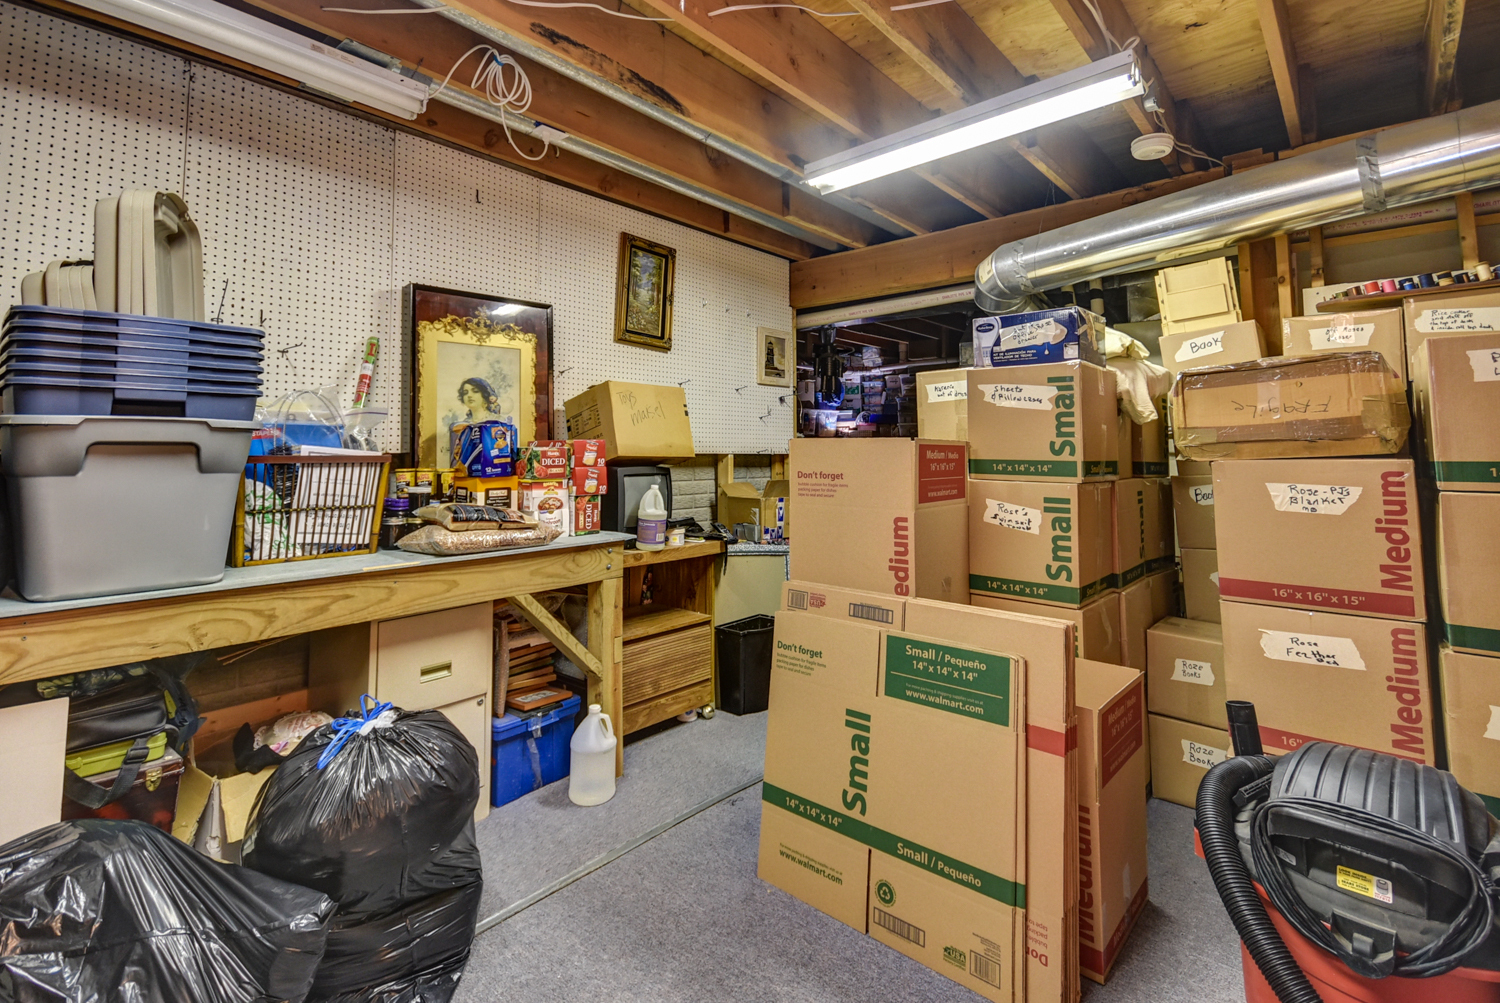 Basement Storage Area